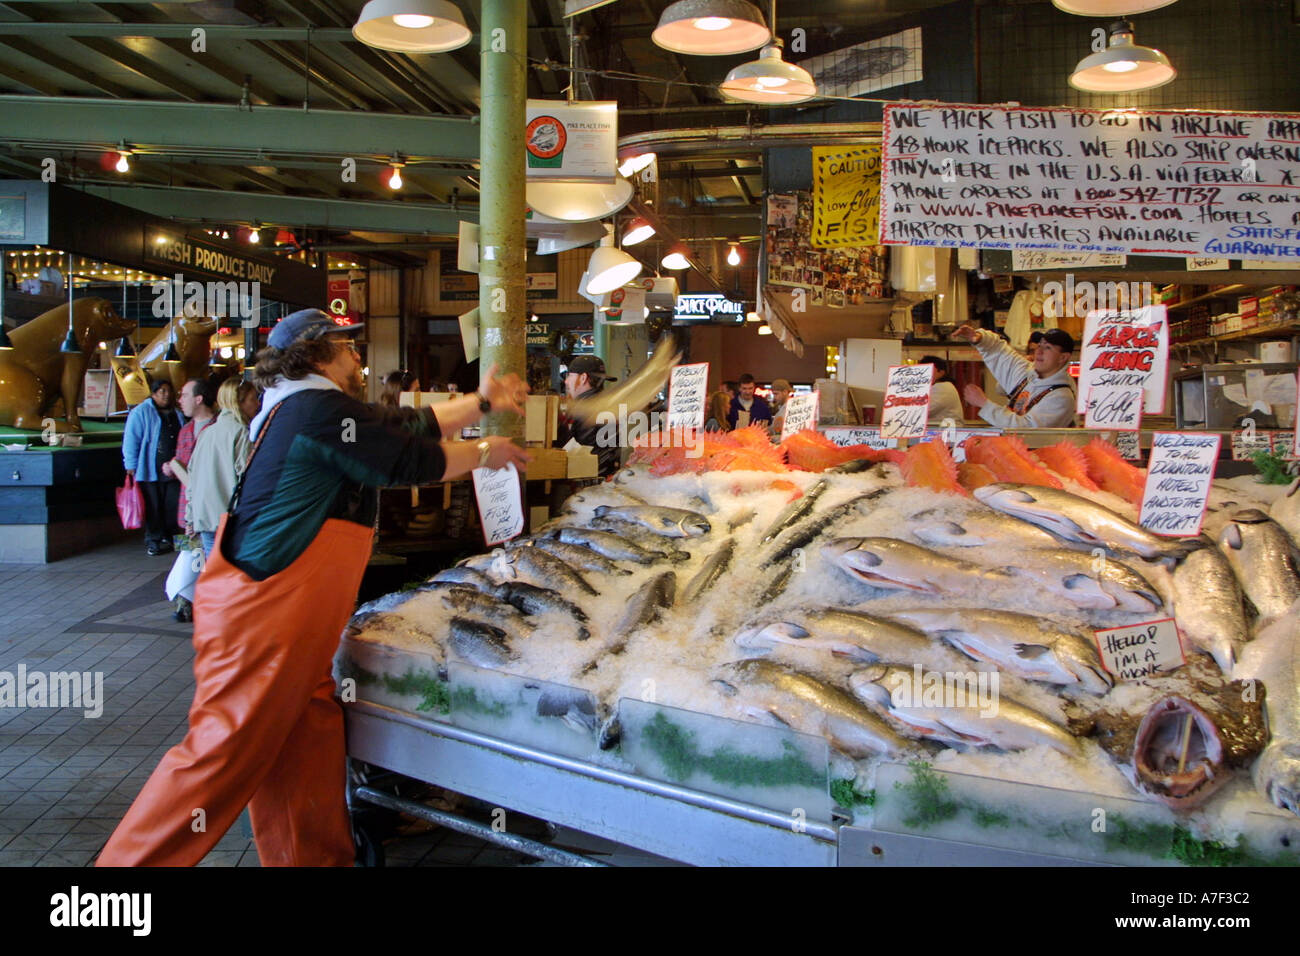 pike place fish market fishmonger throwing fish pike place